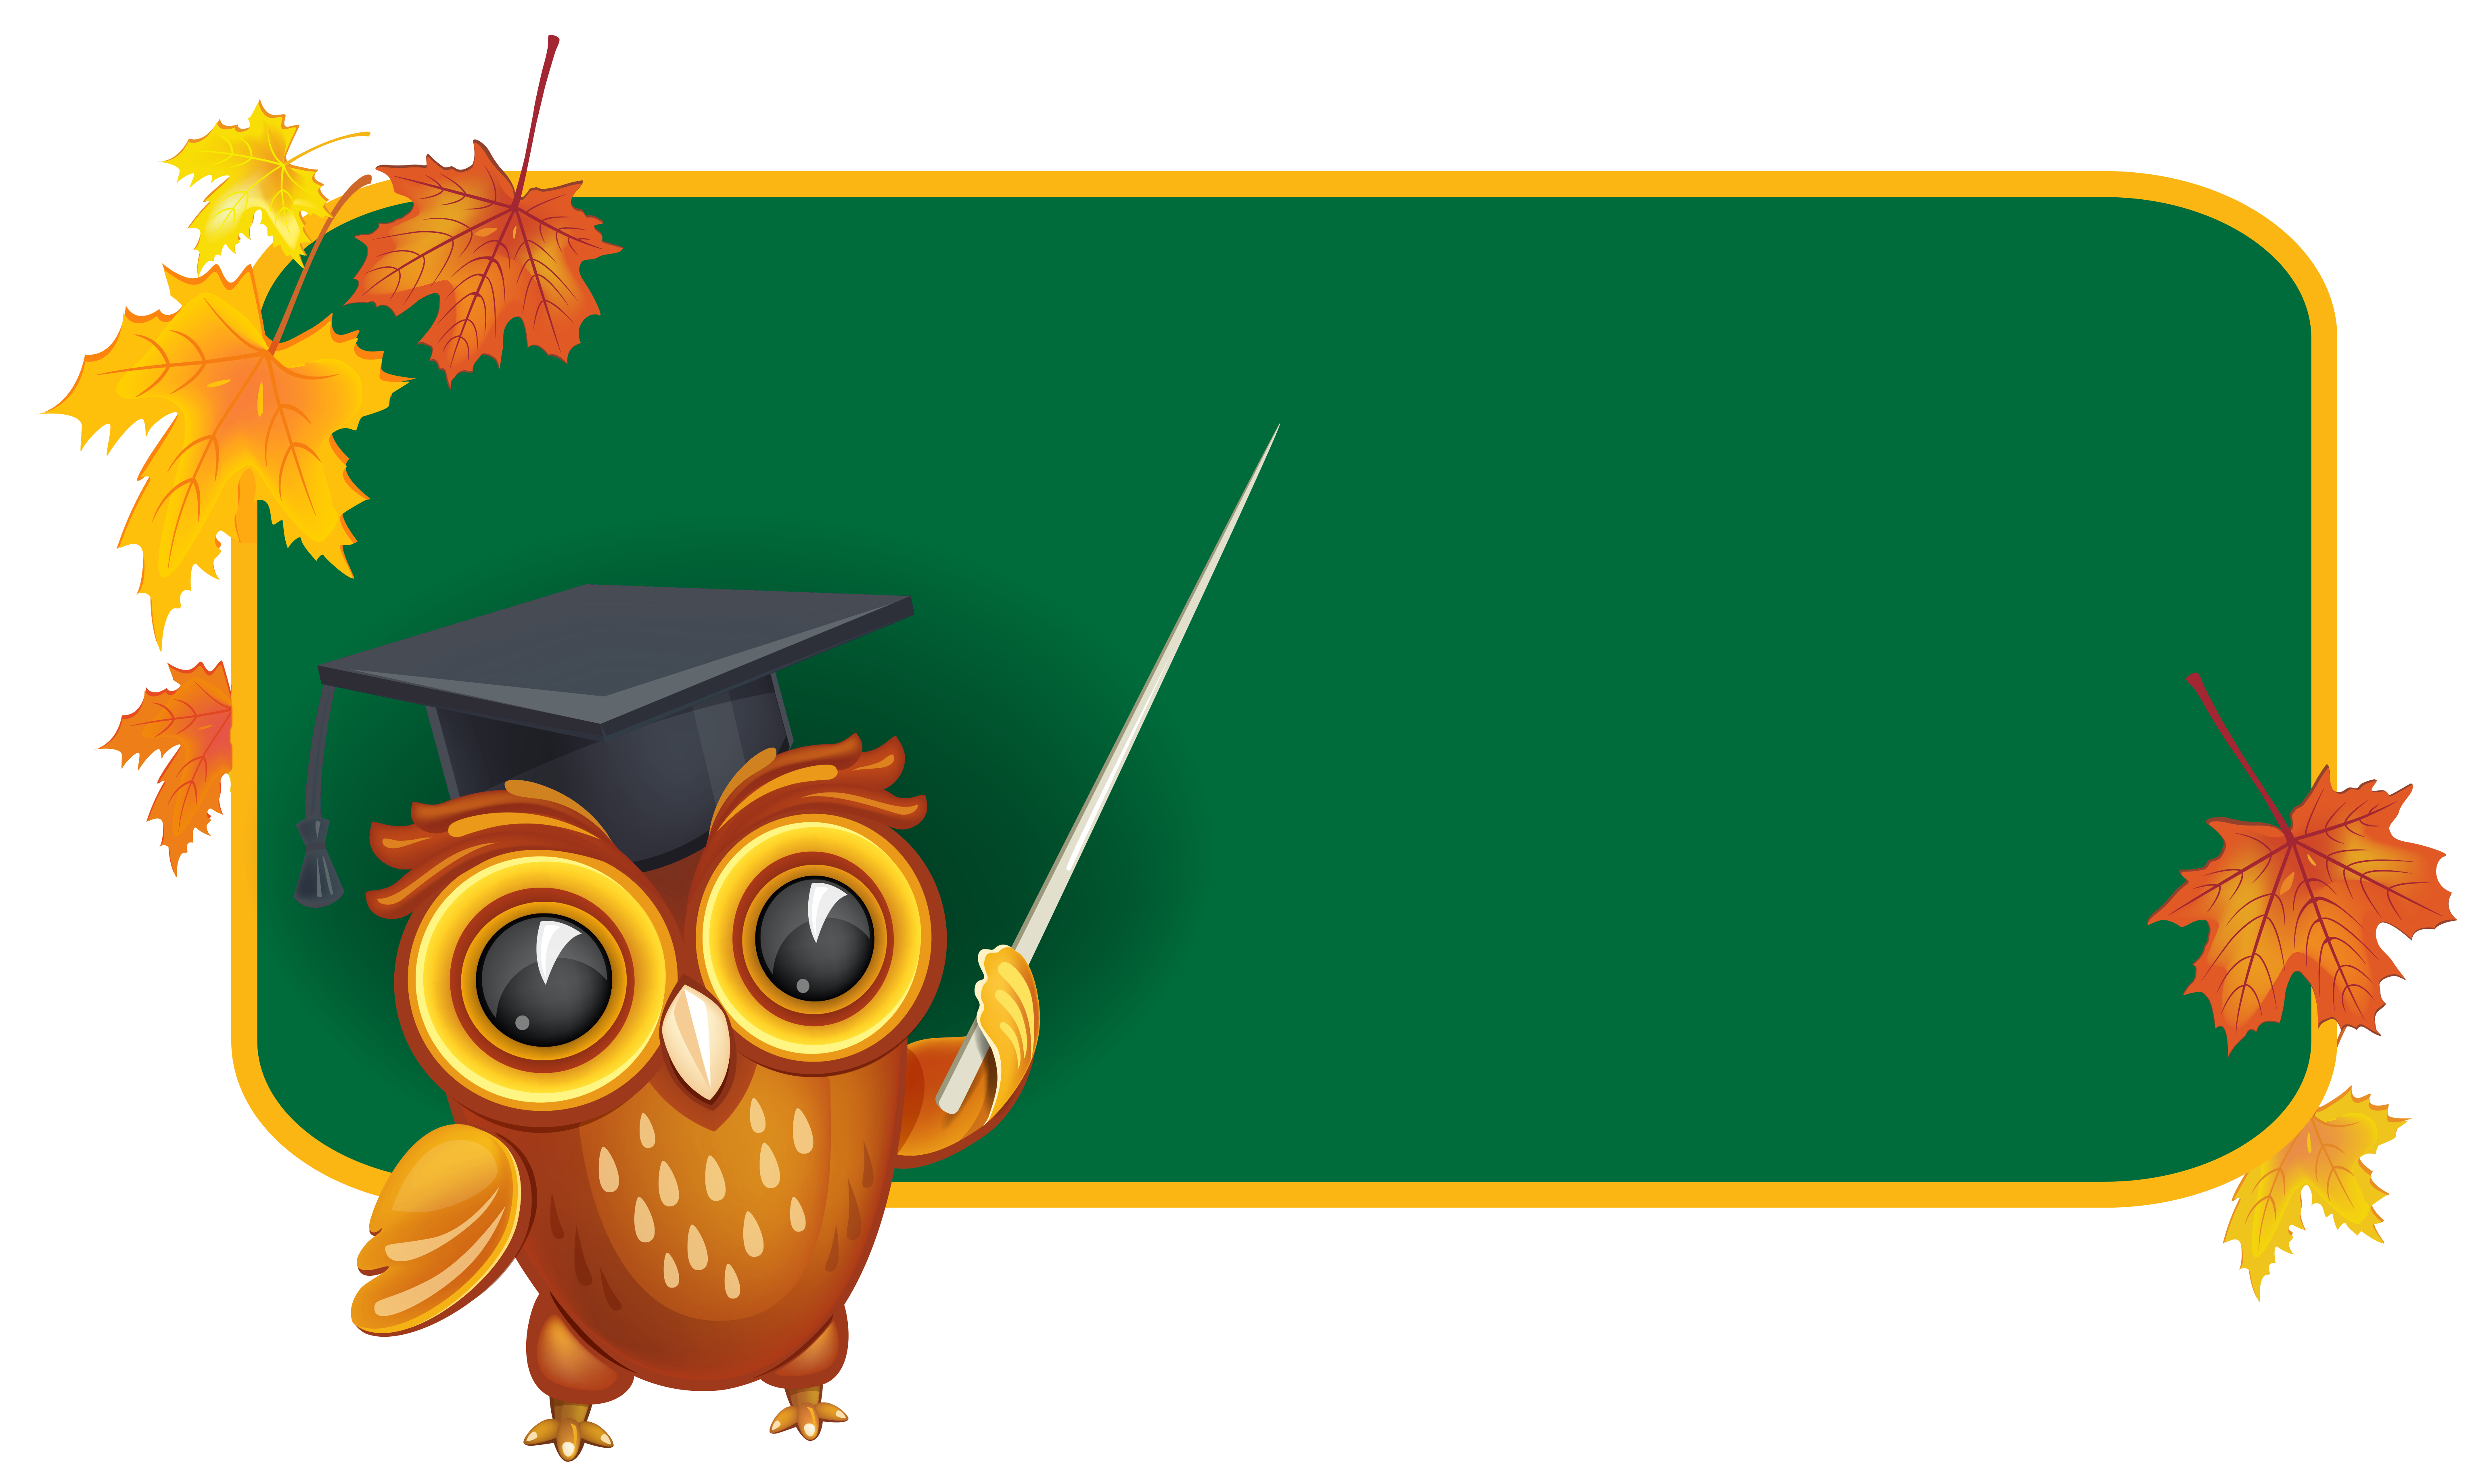 Owl background clipart clip art freeuse library Owl with School Board PNG Clipart Image | Gallery ... clip art freeuse library